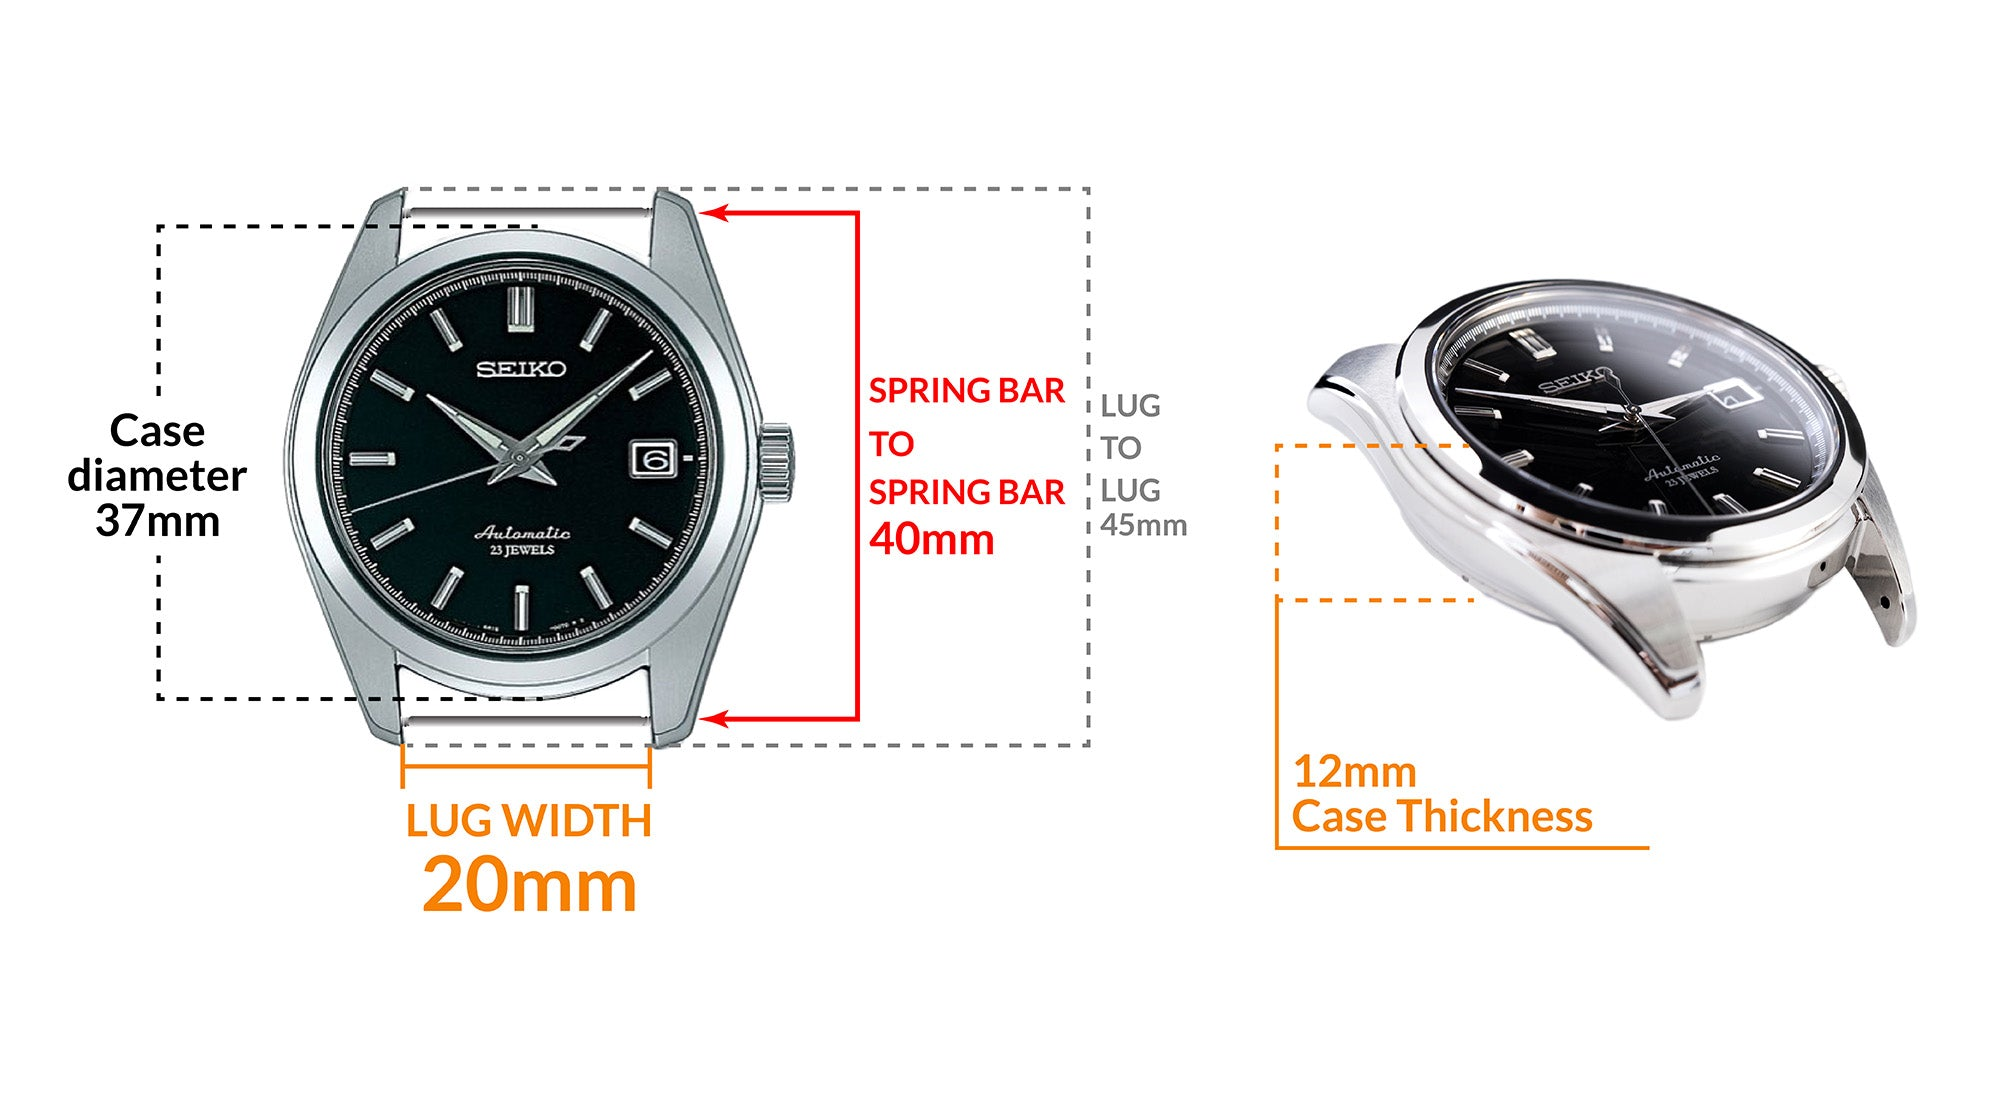 Seiko SARB033 Mechanical - Details Seiko watch size, Lug width and case dimensions